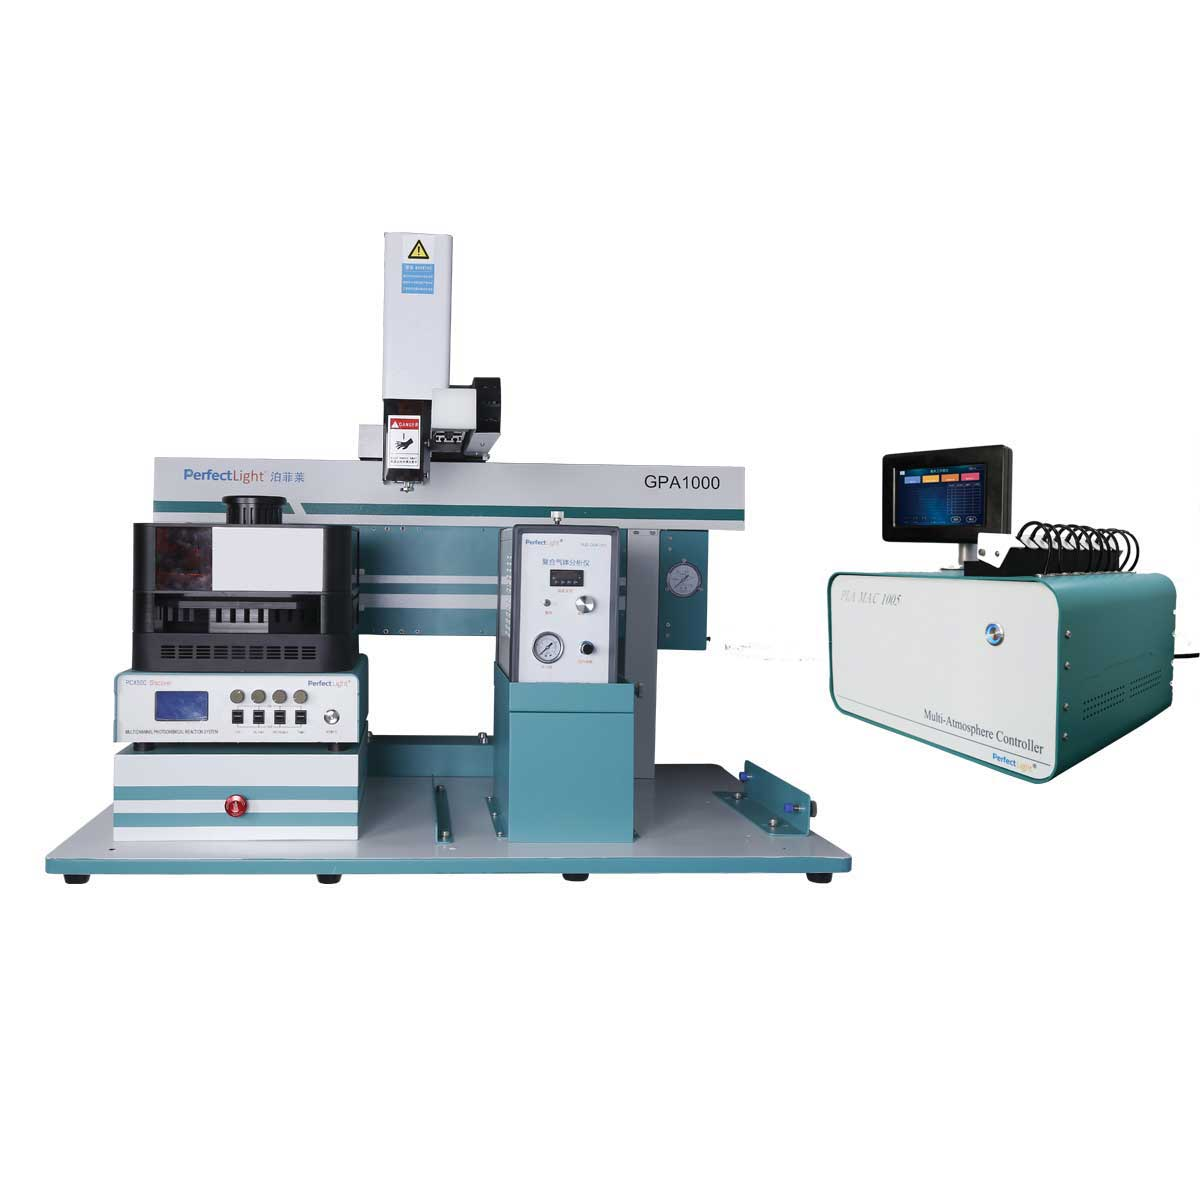 MCP-WS1000 Photochemical workstation